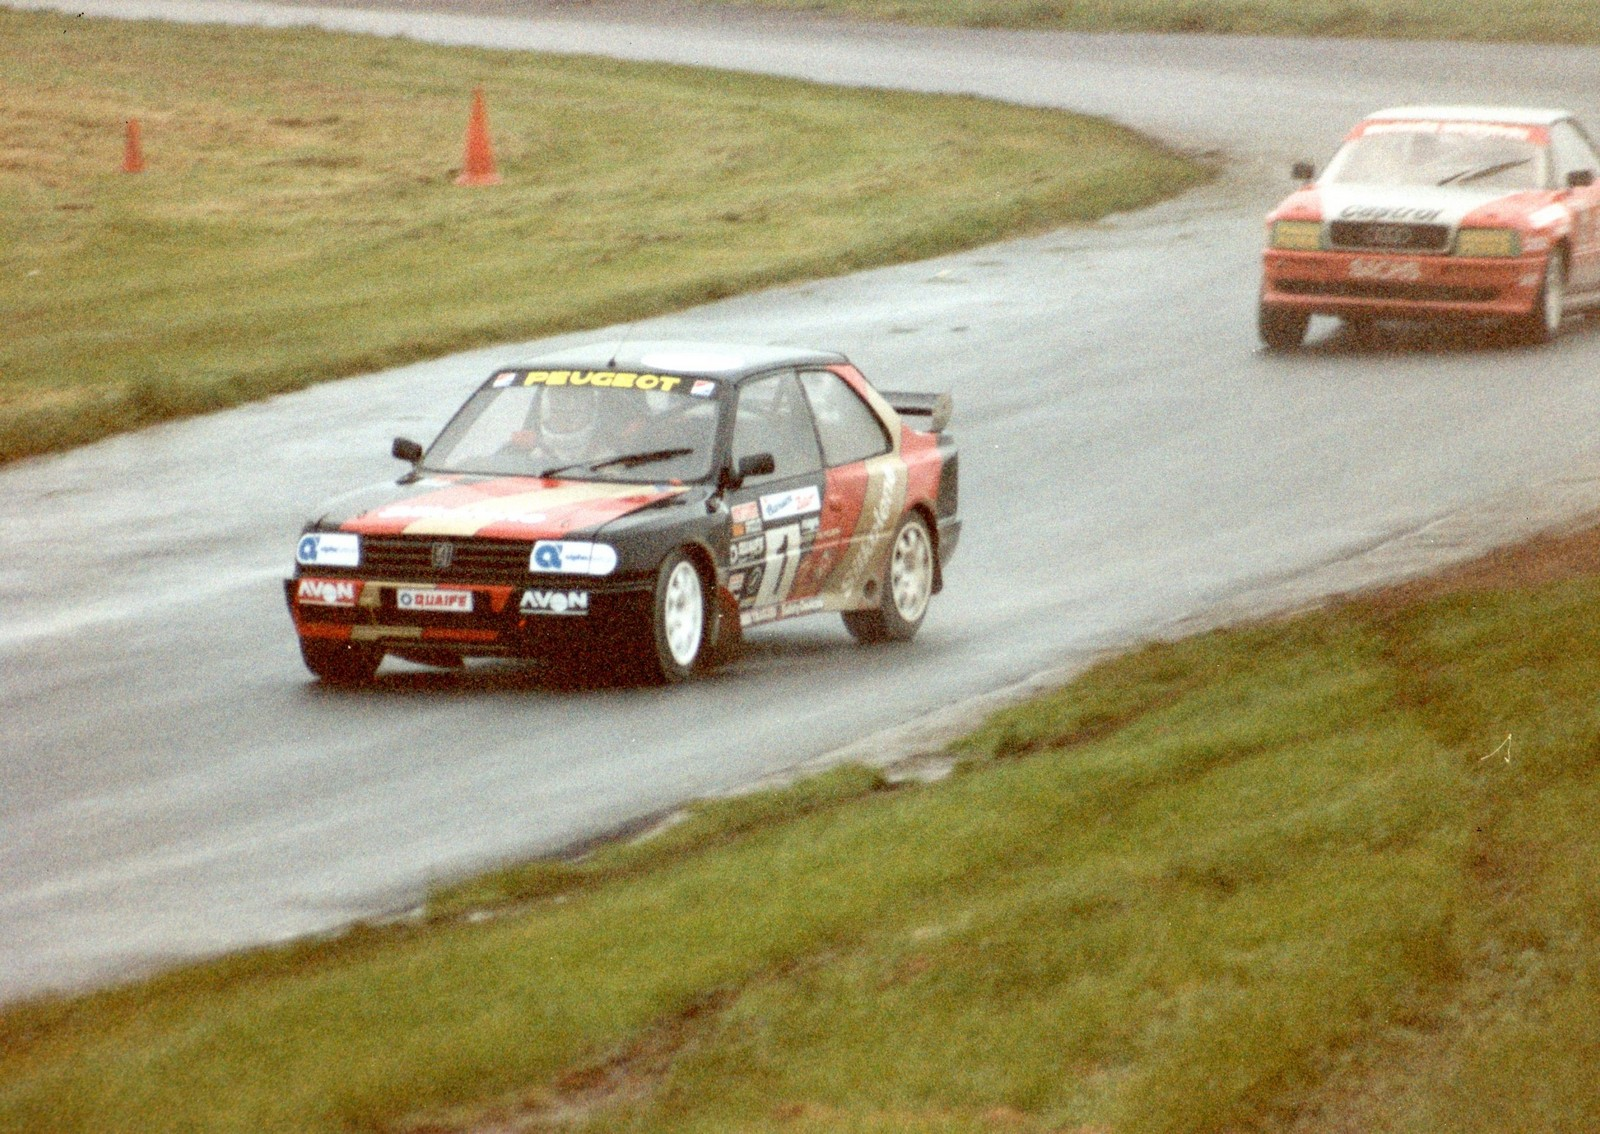 1993-mondello-park-circuit-naas-ireland-european-championship-round-4-will-finished-3rd